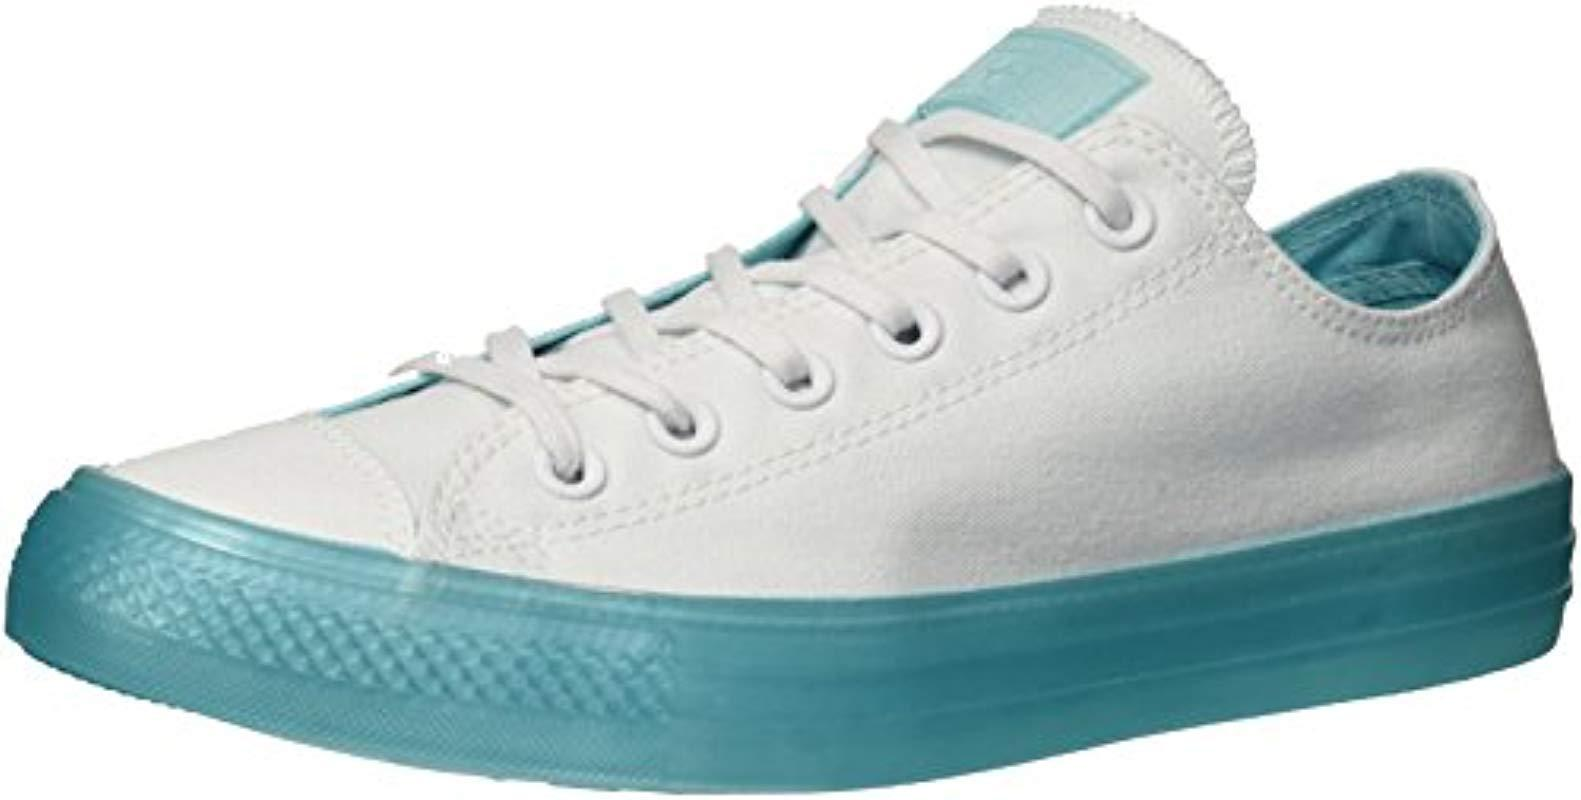 e5ead9104dd1 Converse. Women s Chuck Taylor All Star Candy Coated Low Top Sneaker